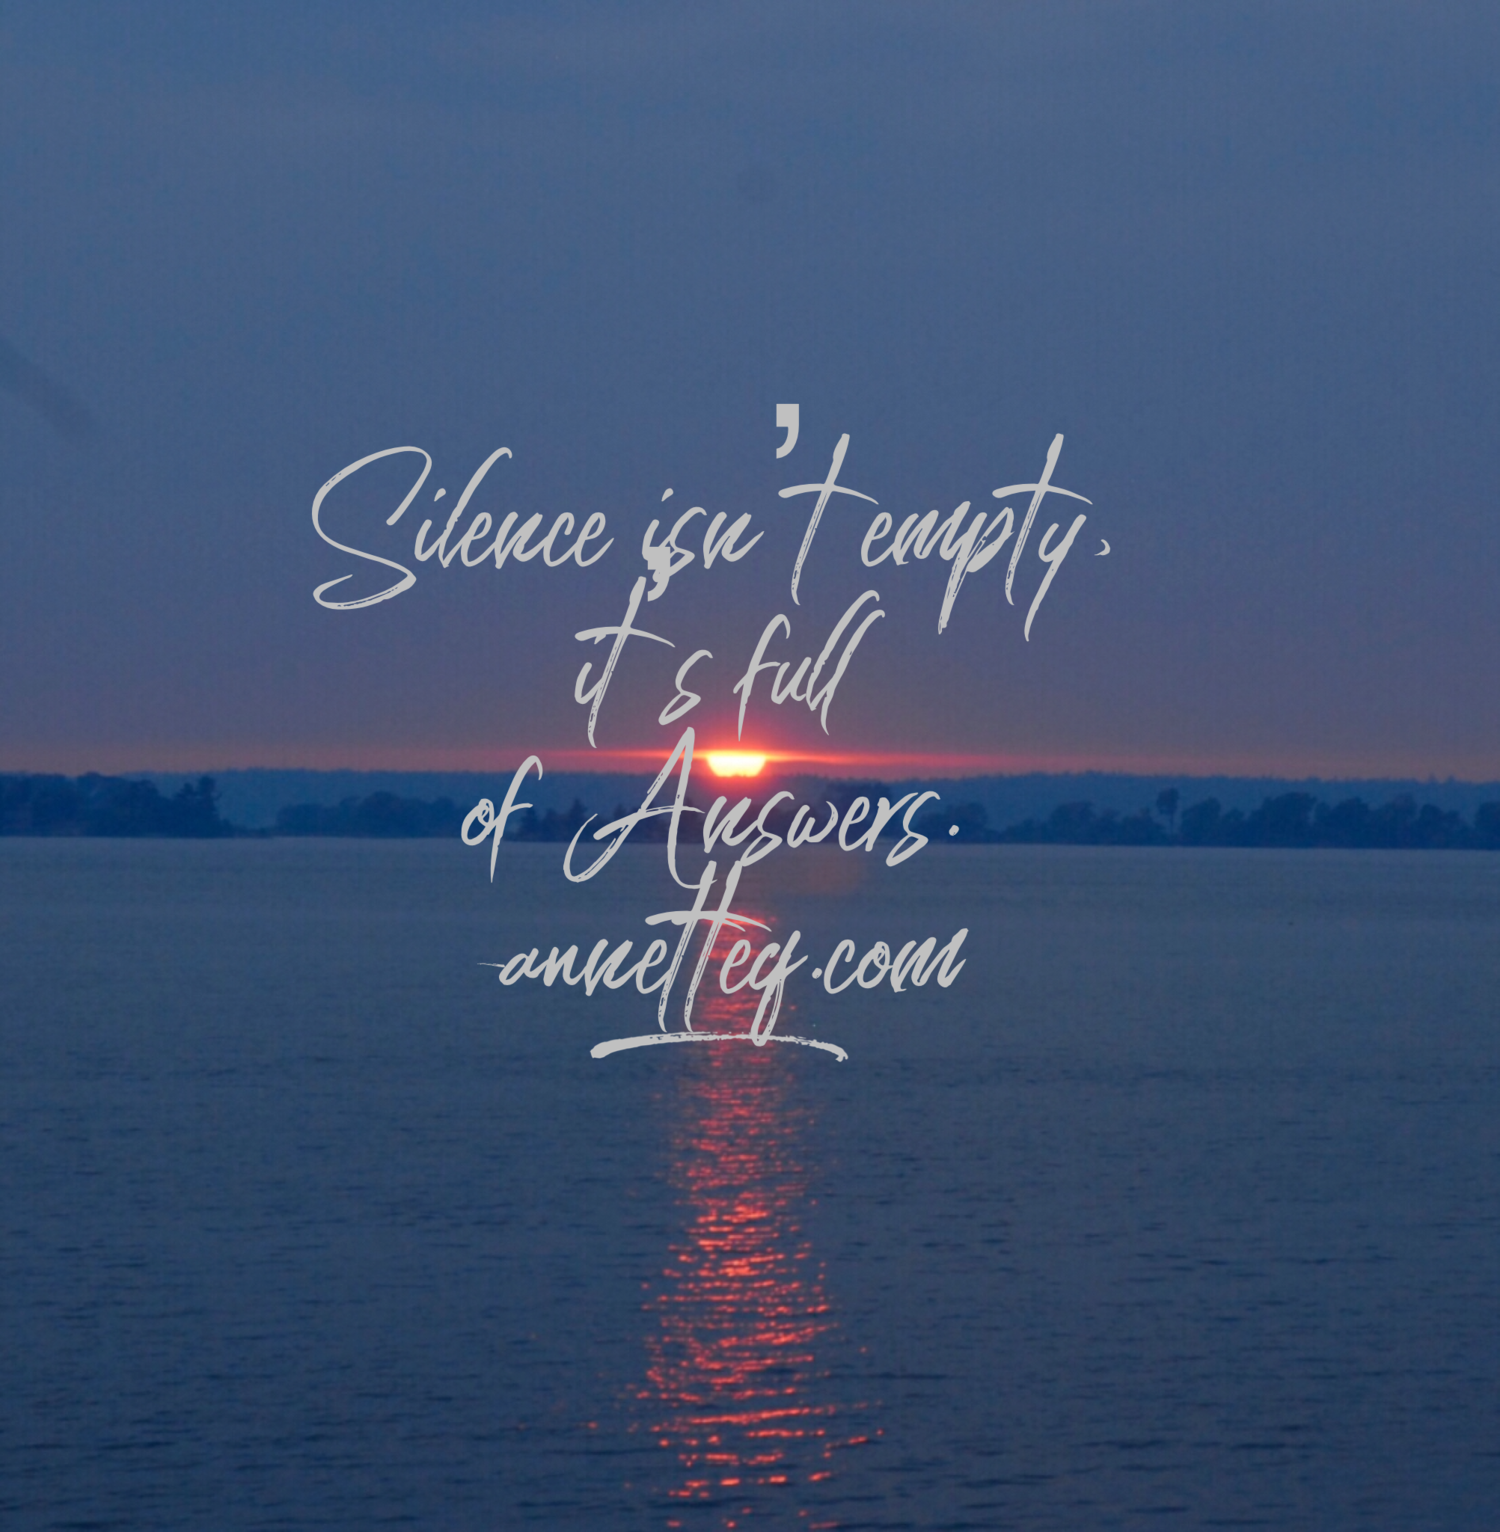 Quick Quotes   12 Silence Isn T Empty It S Full Of Answers Annetteq Com